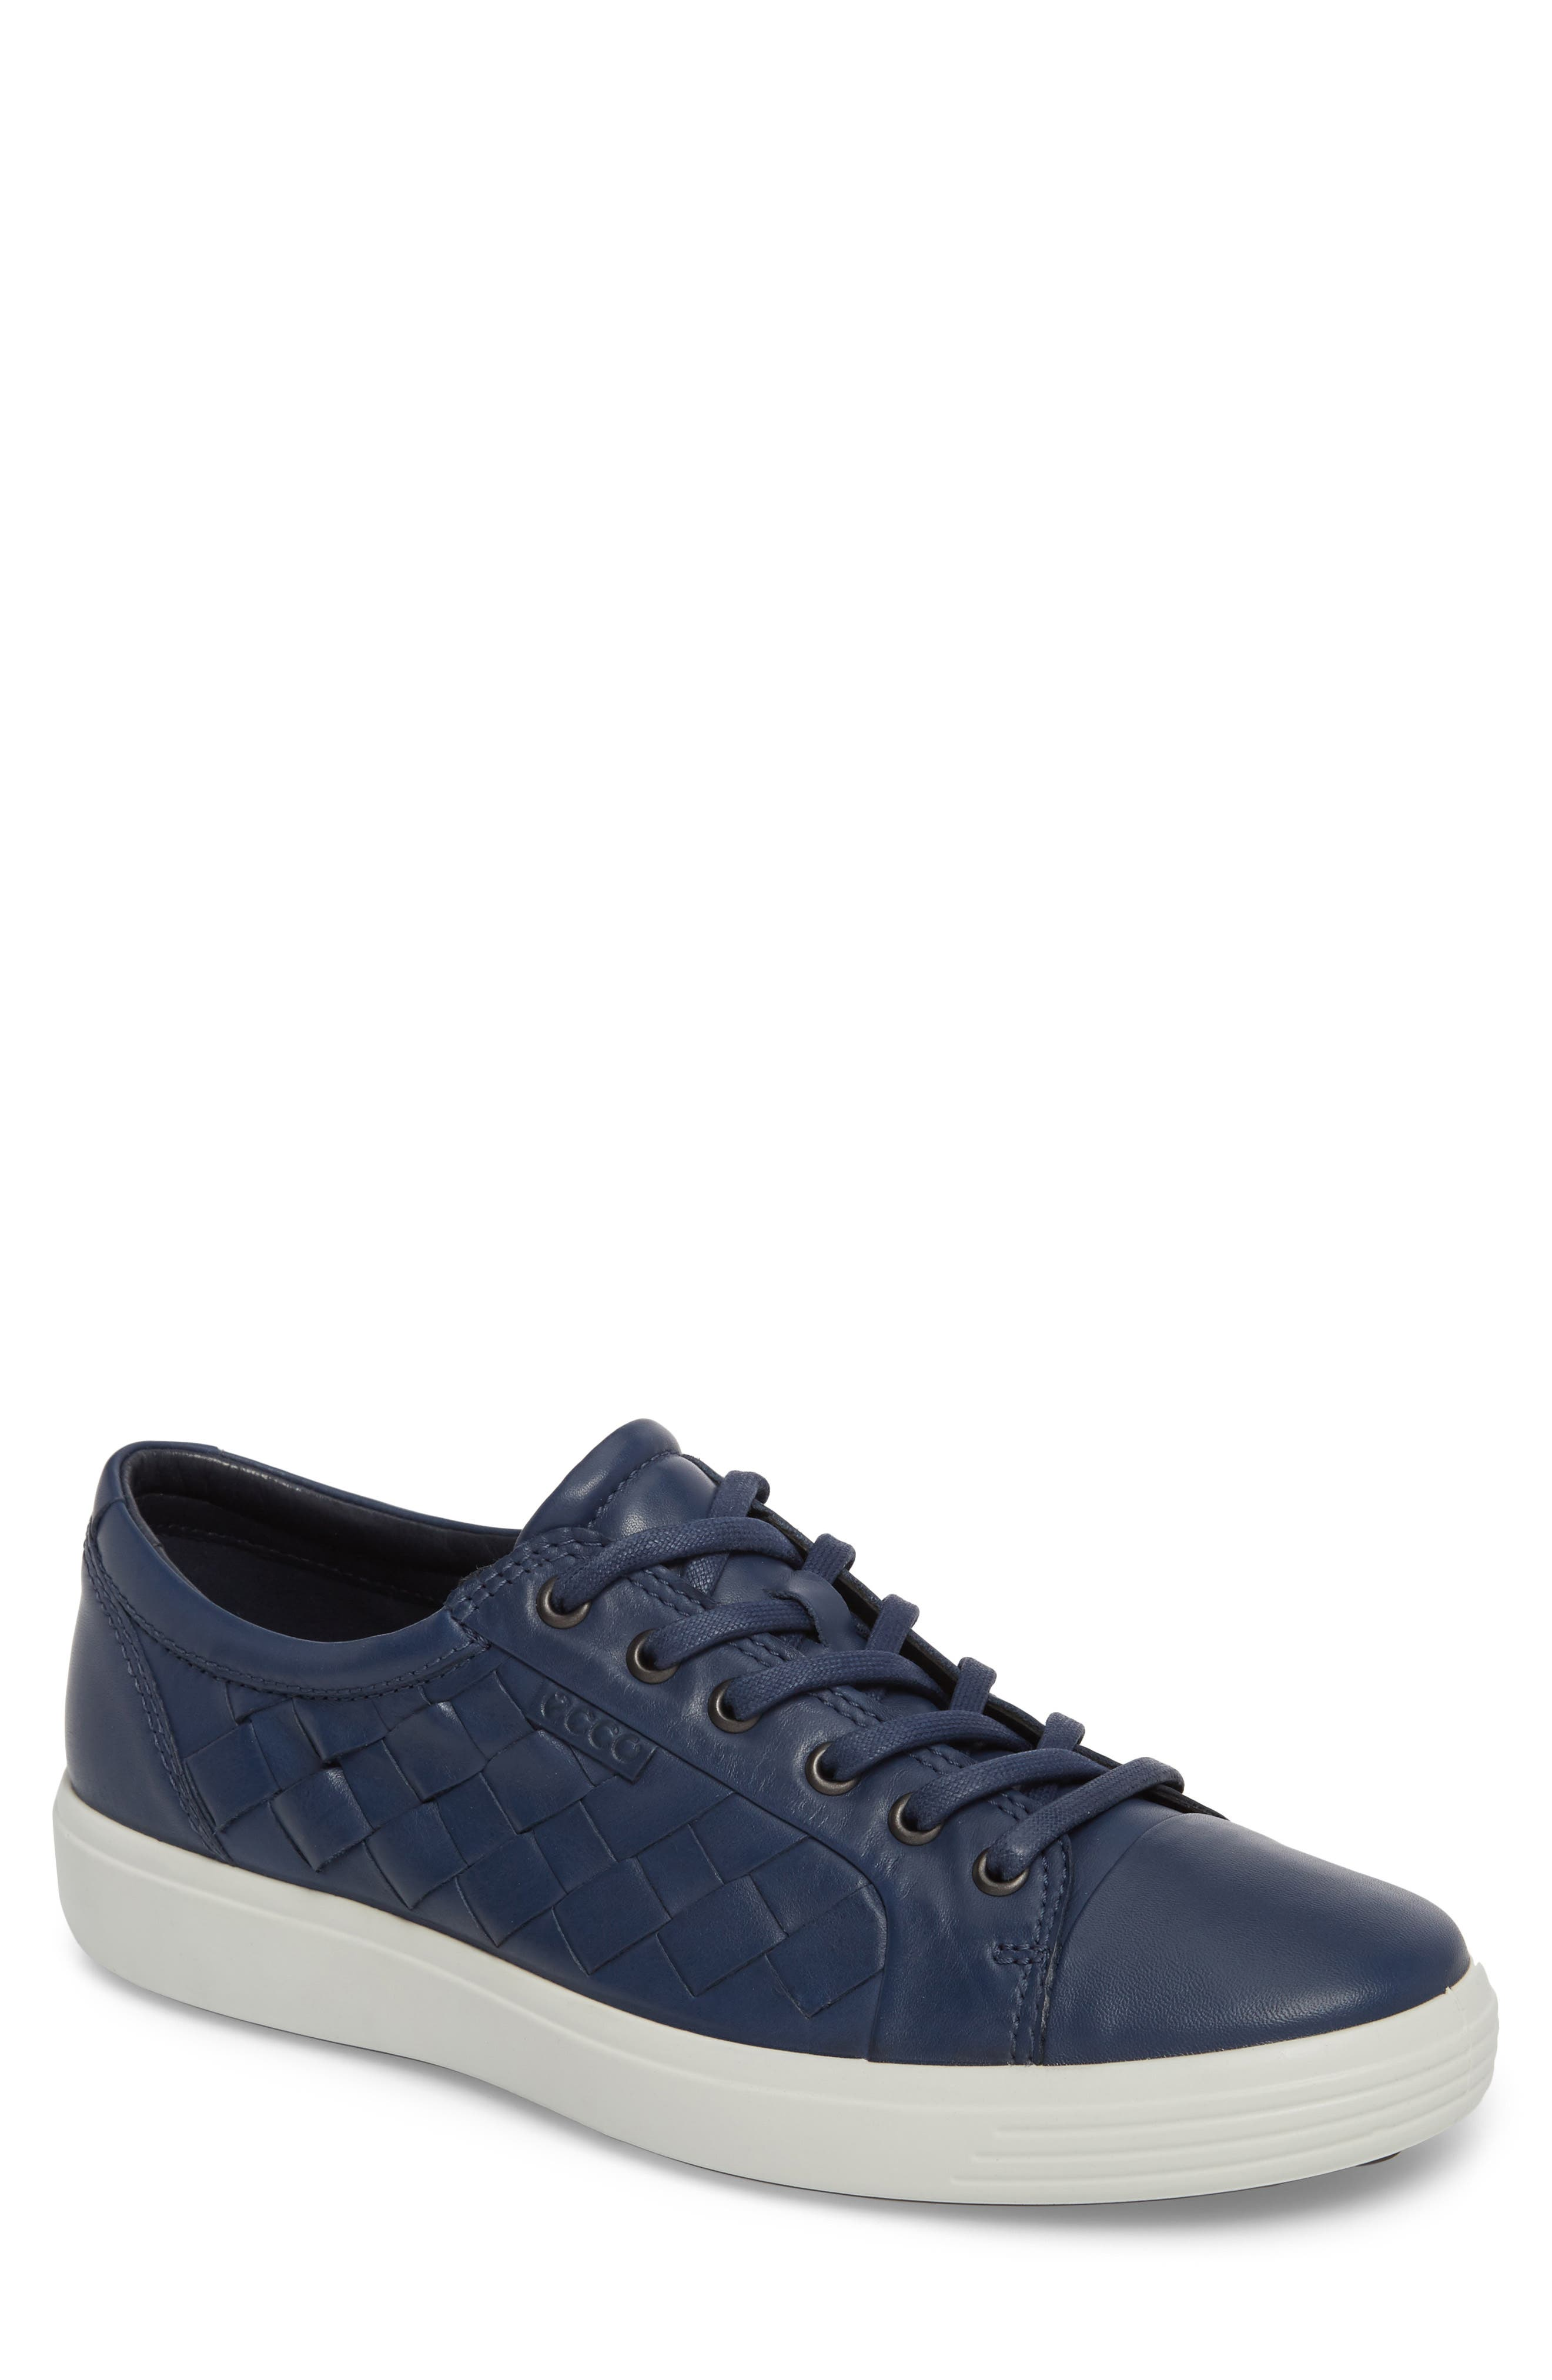 Soft 7 Woven Sneaker,                             Main thumbnail 1, color,                             True Navy Leather